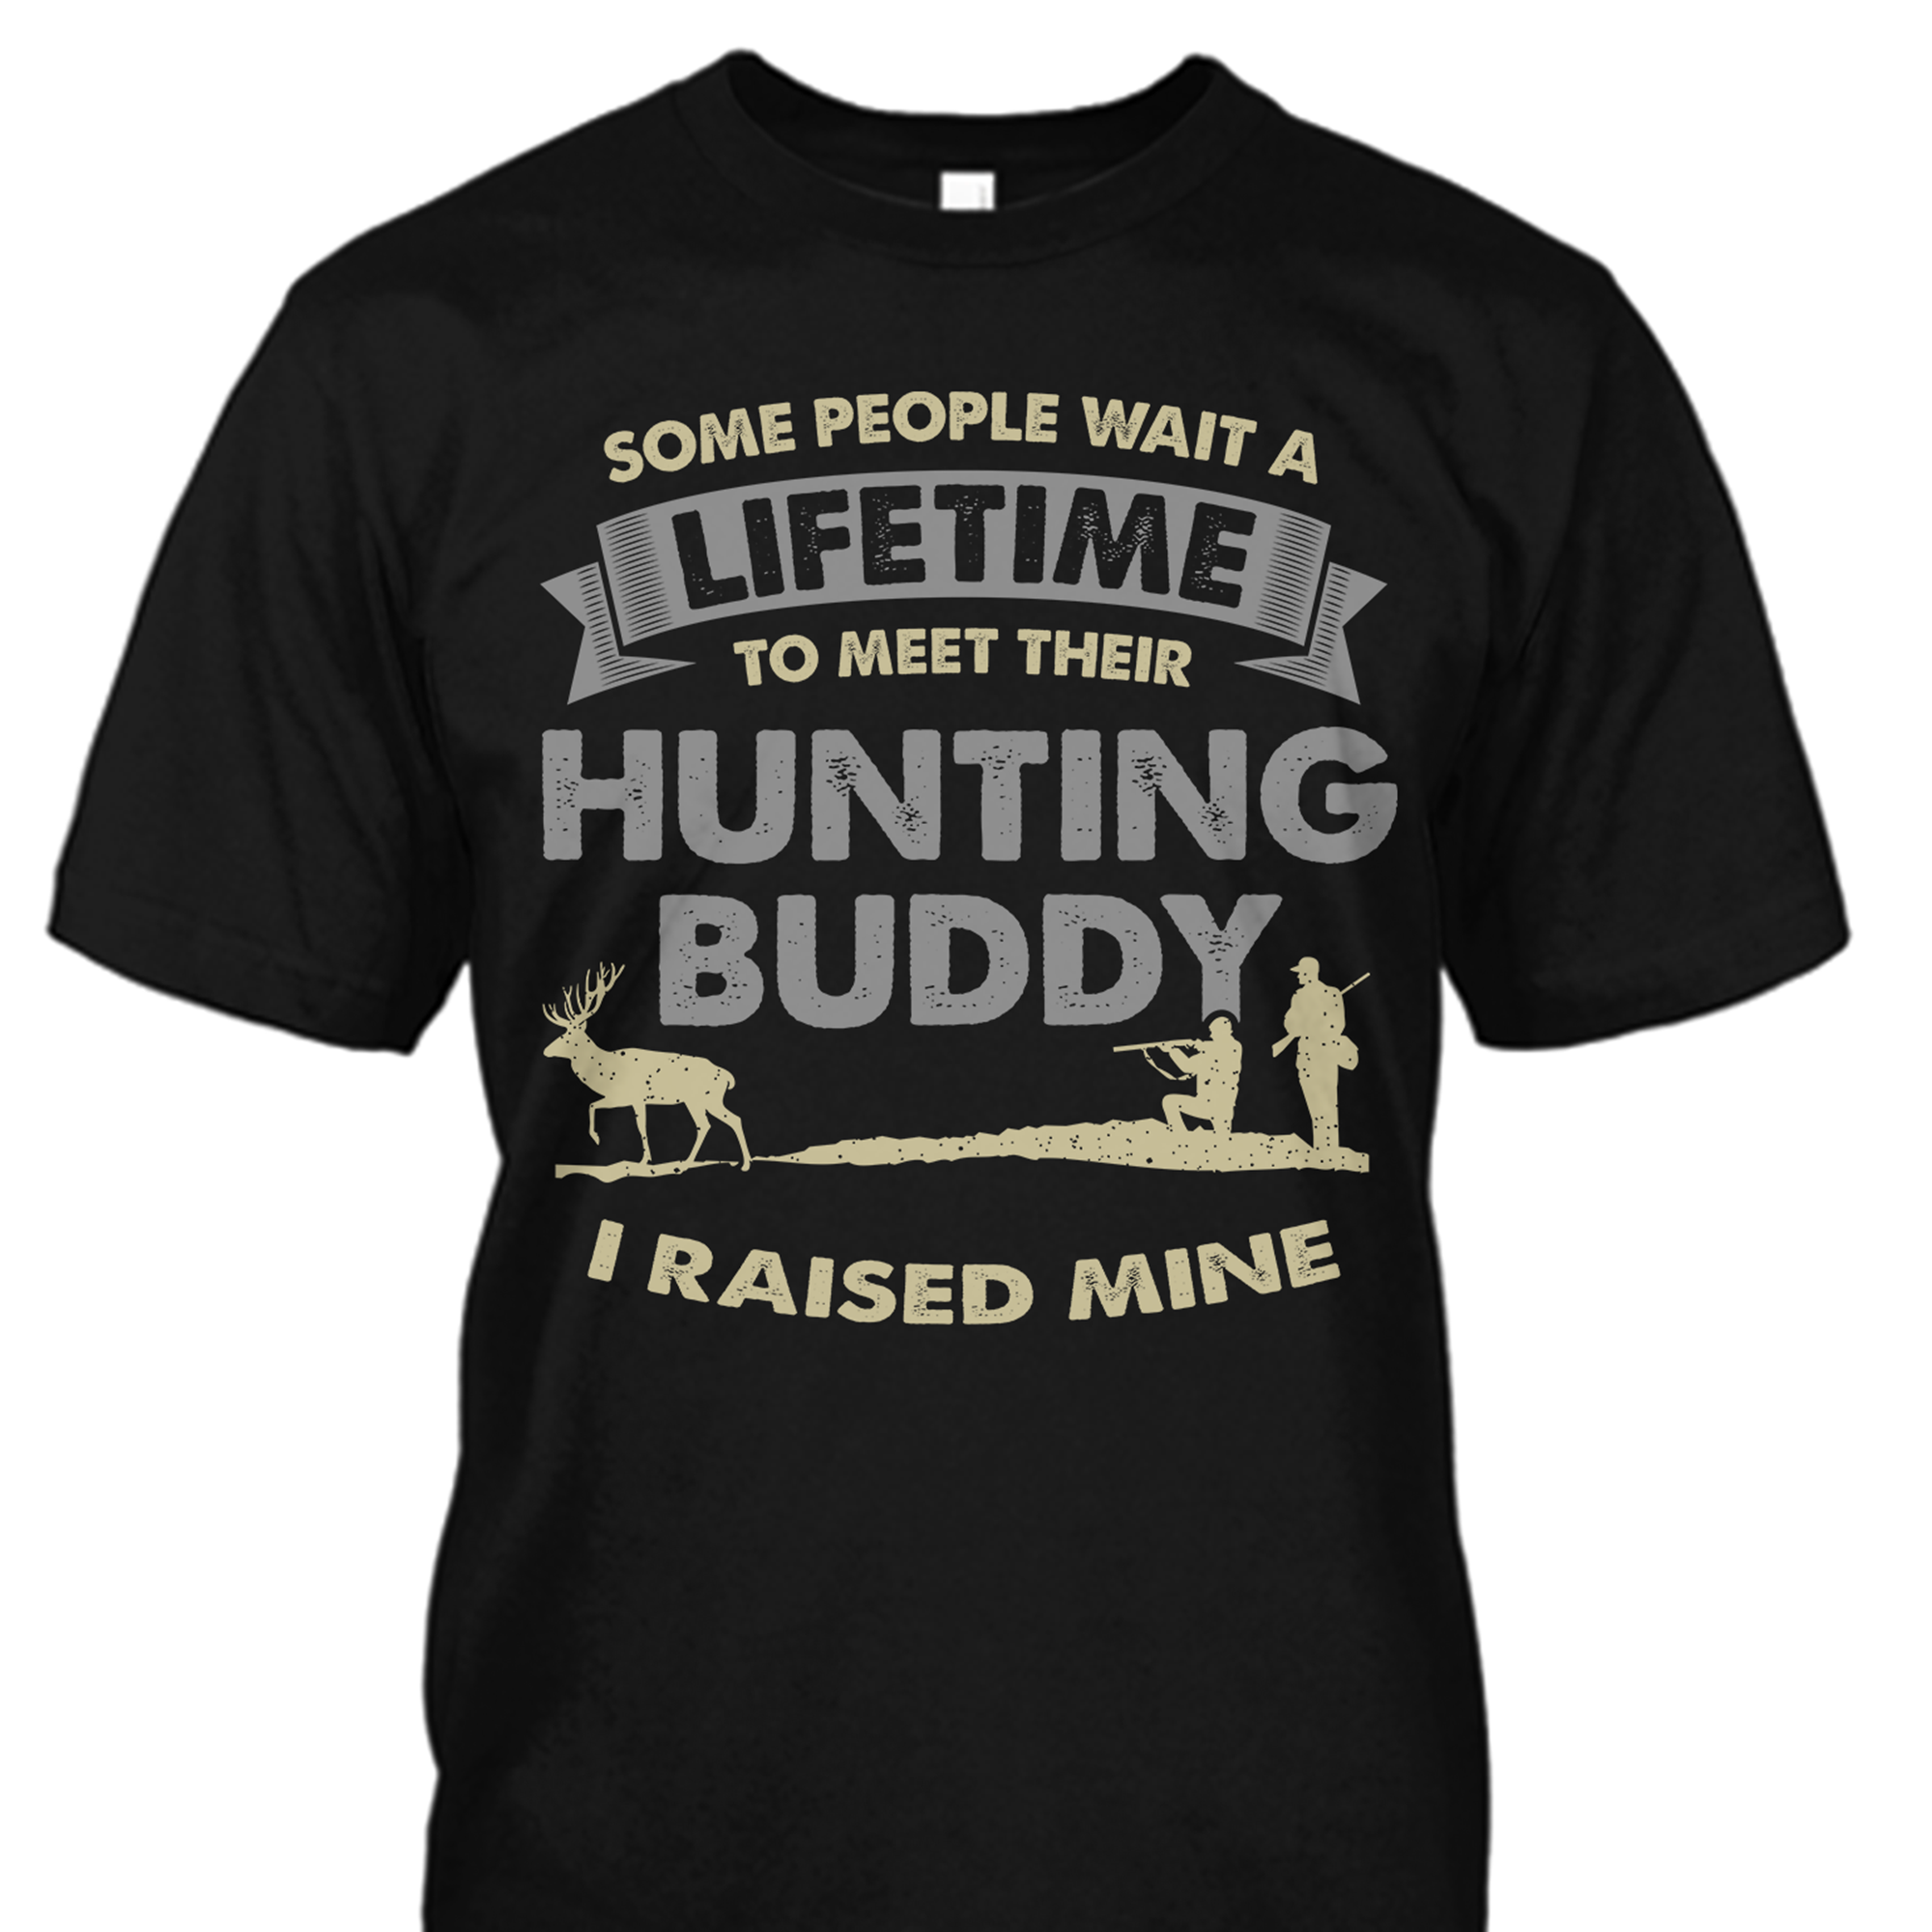 Did You Raise Your Deer Hunting Buddy?